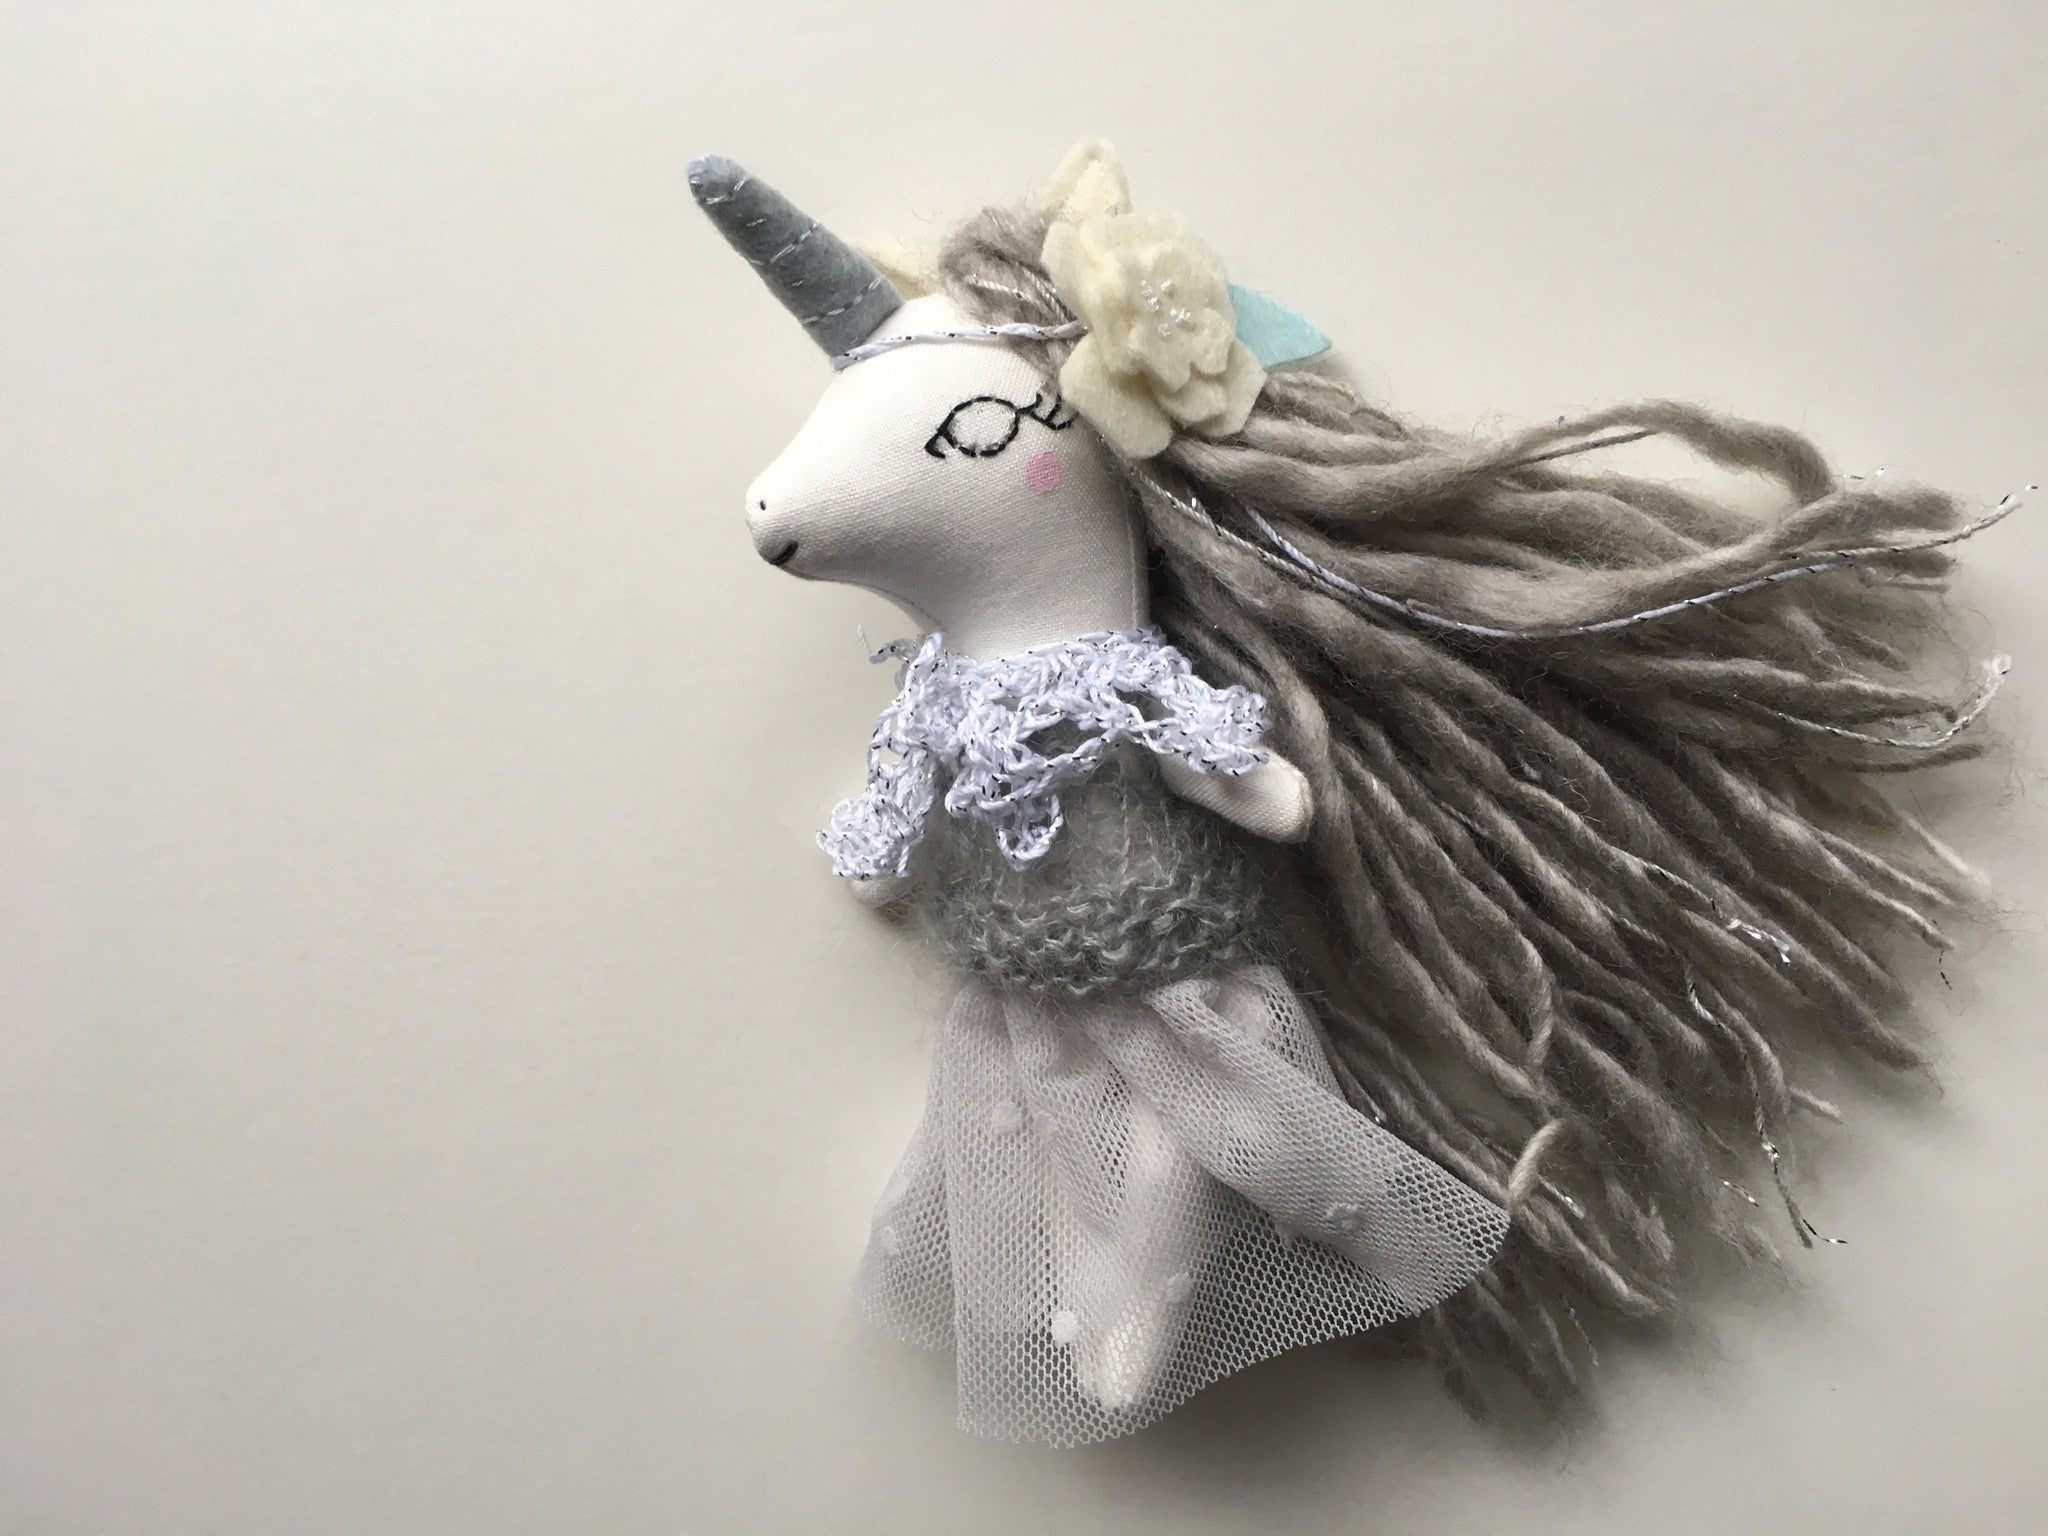 Unicorn Doll - Mini Heirloom Cloth Doll  - gray/silver - about 6.5 inches tall